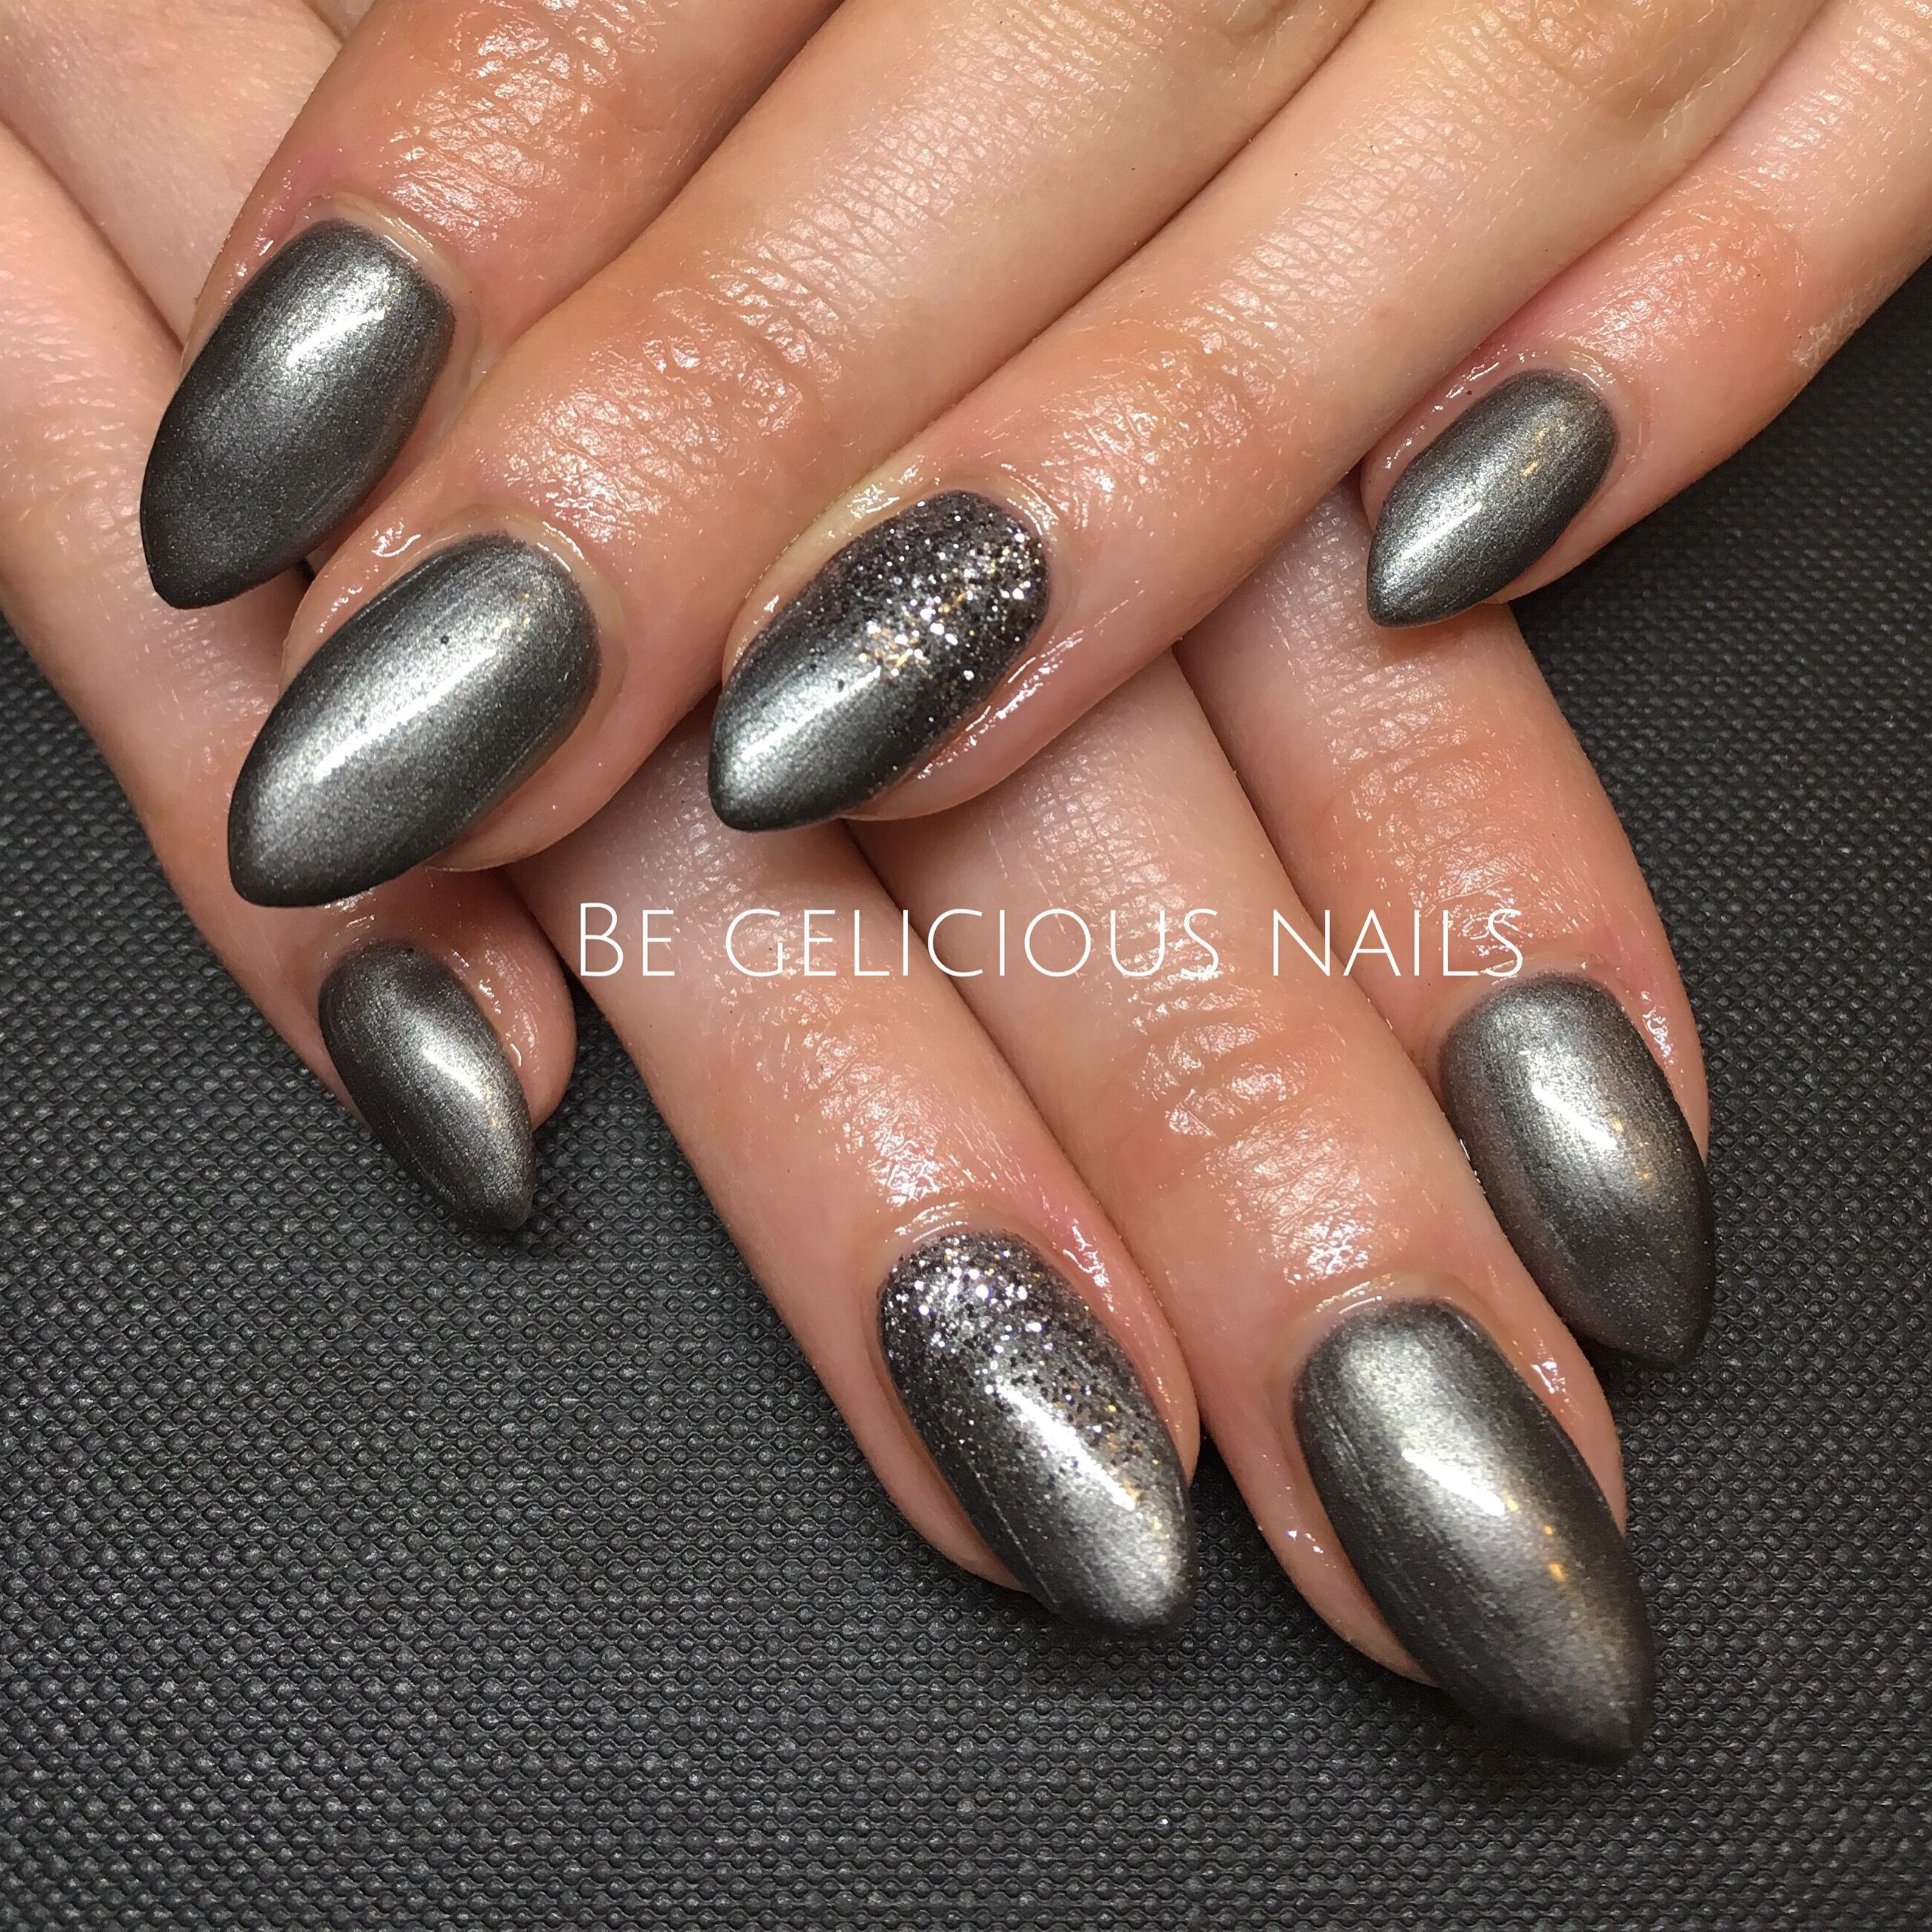 Calgel nails gel nail art nail design metallic grey glitter calgel nails gel nail art nail design metallic grey glitter prinsesfo Gallery